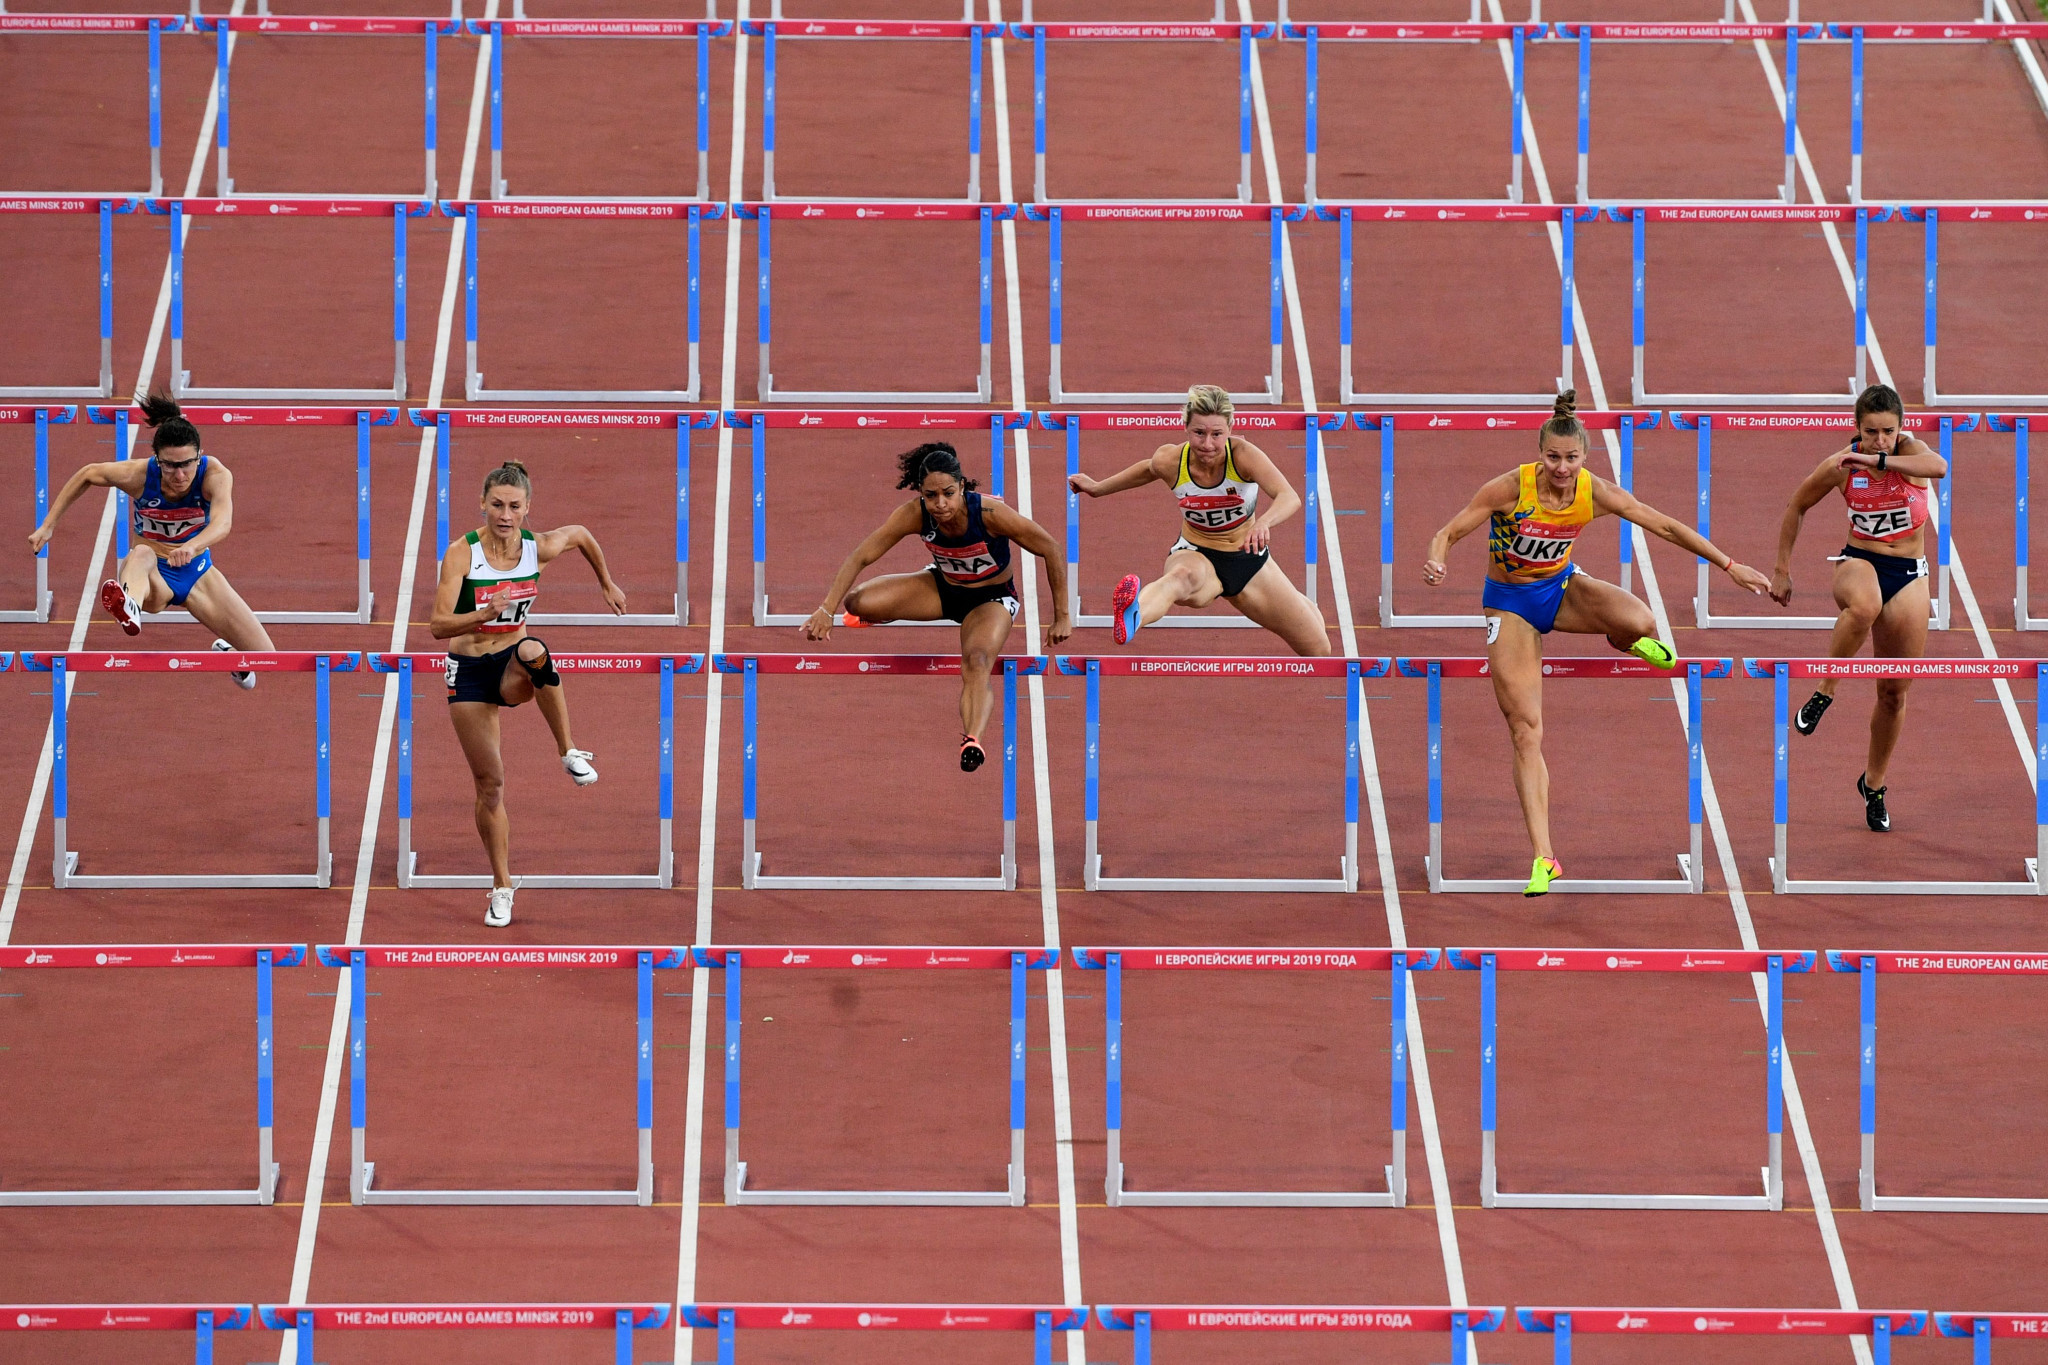 Minsk 2019 athletics competition comes to conclusion